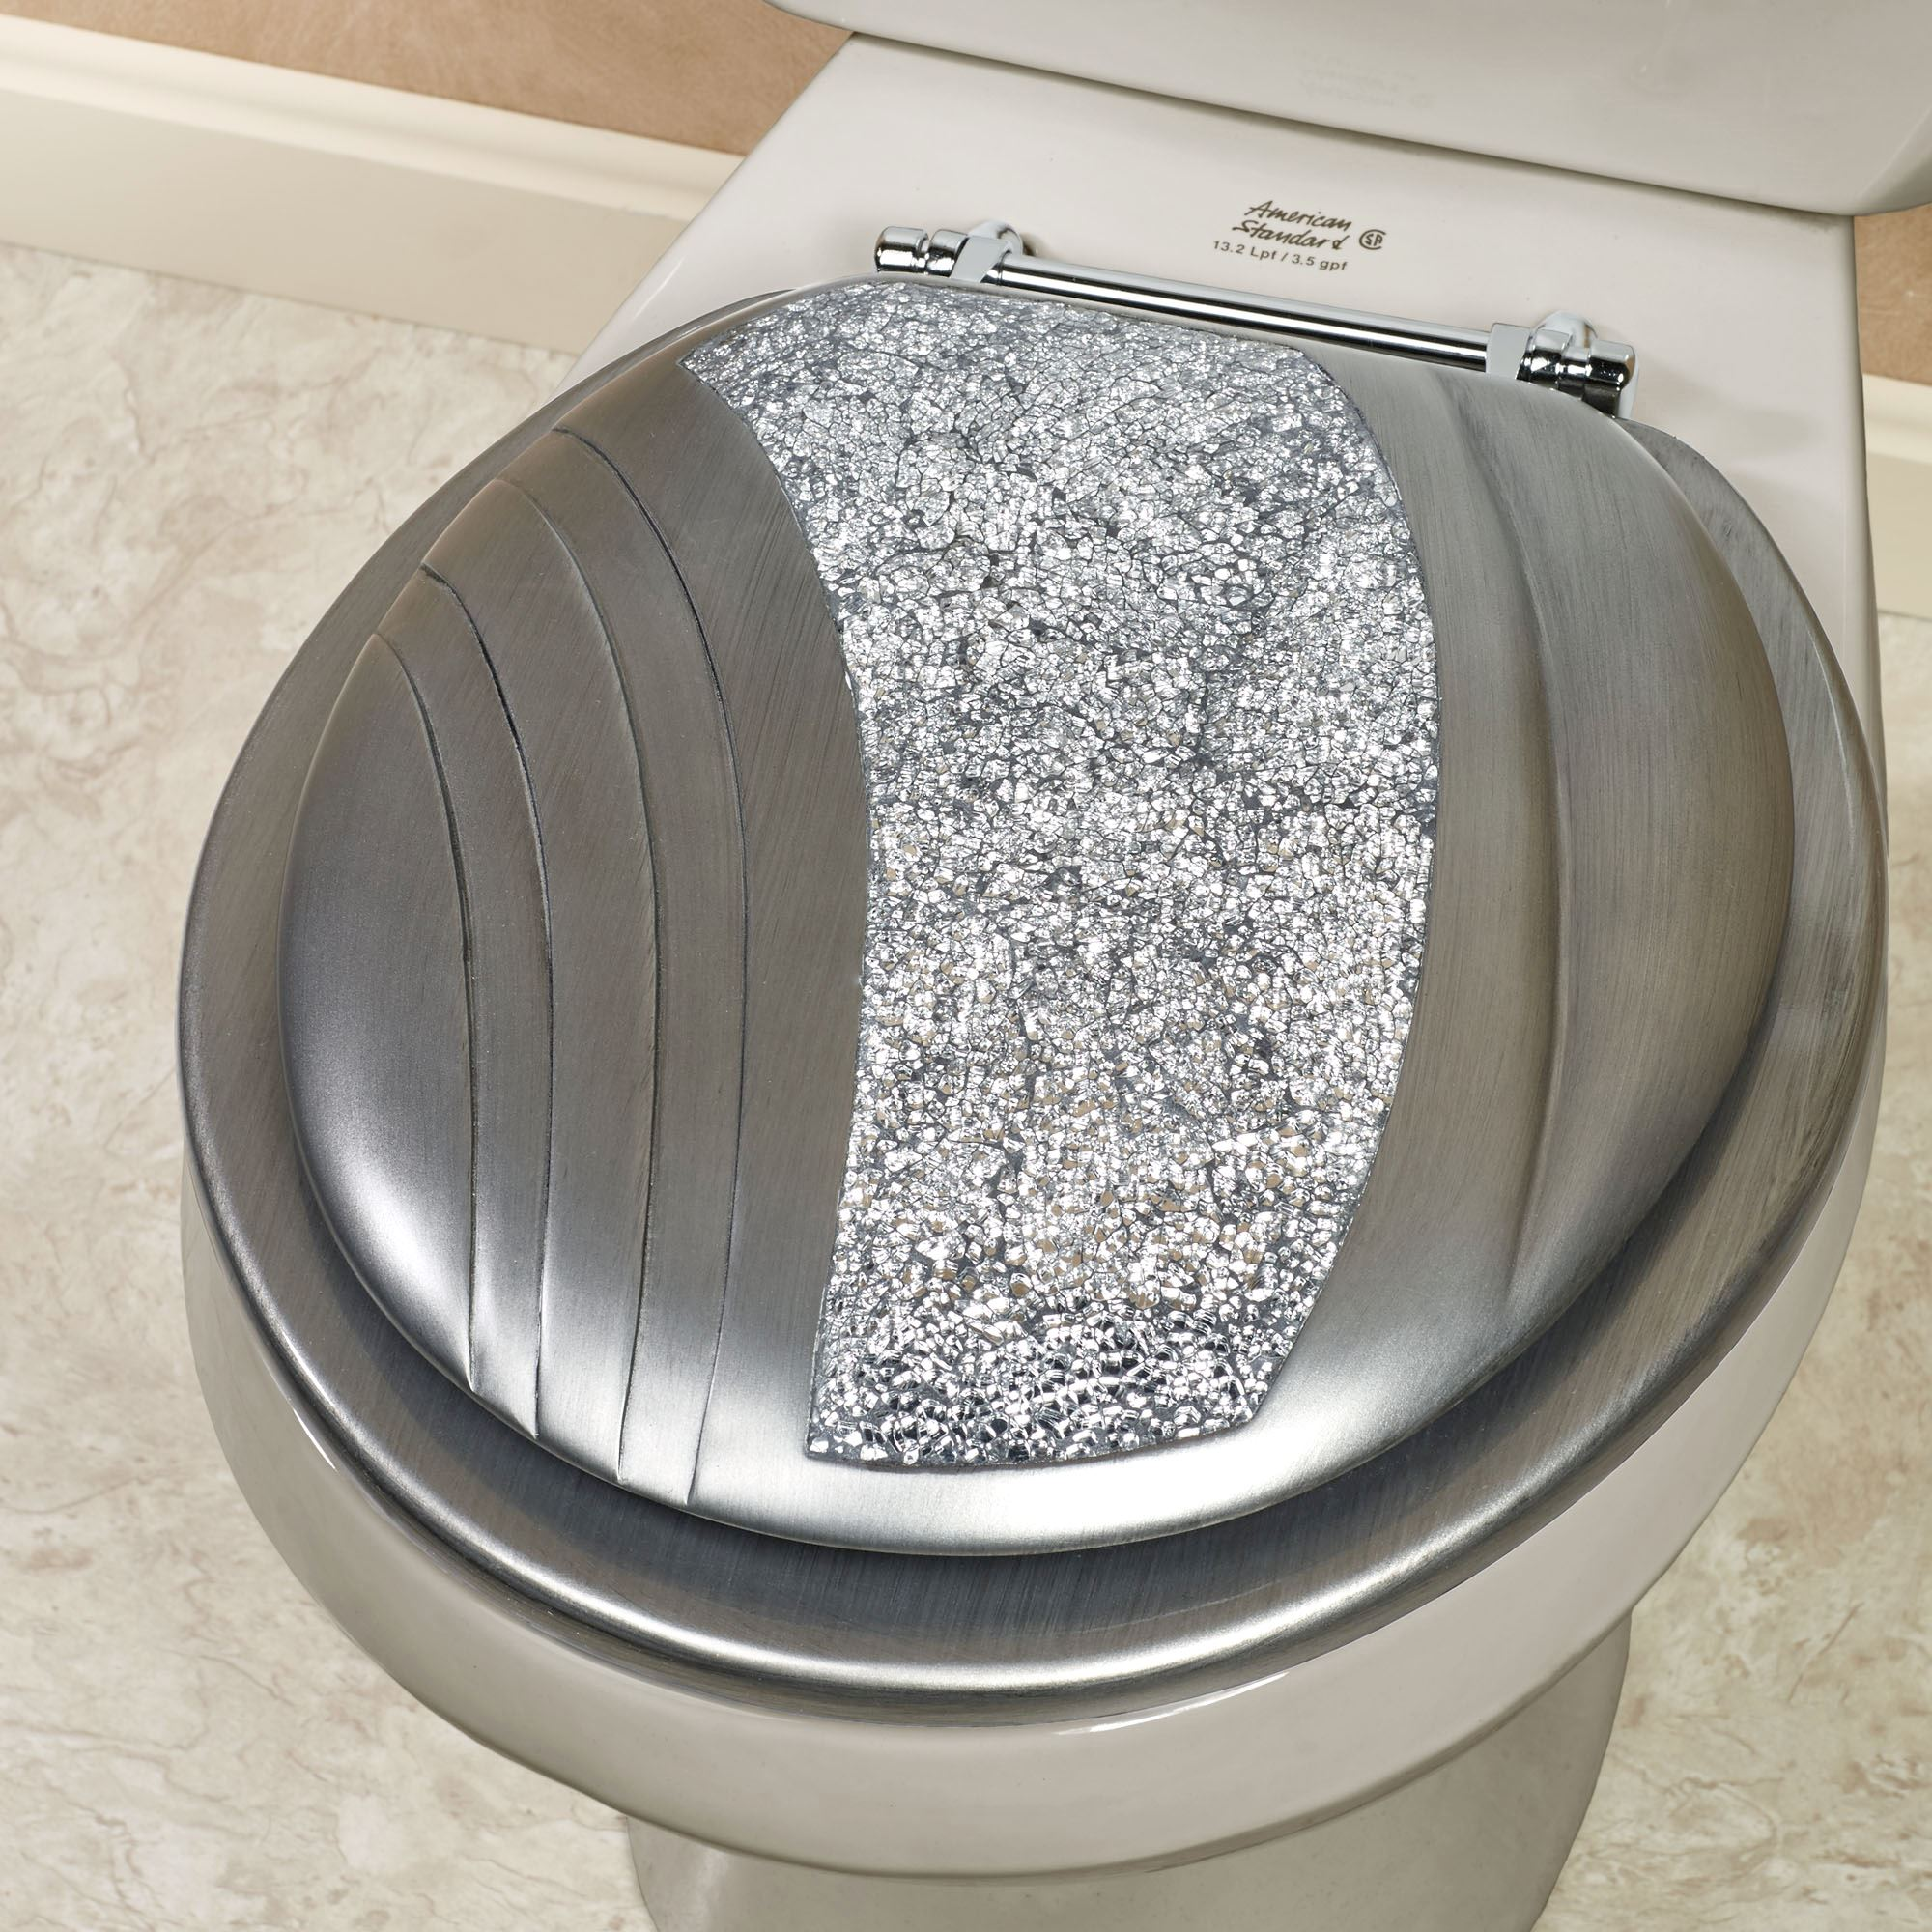 Soft Touch Toilet Seat. Brilliance Mosaic Silver Gray Standard Toilet Seat Decorative Seats  Elongated Touch of Class